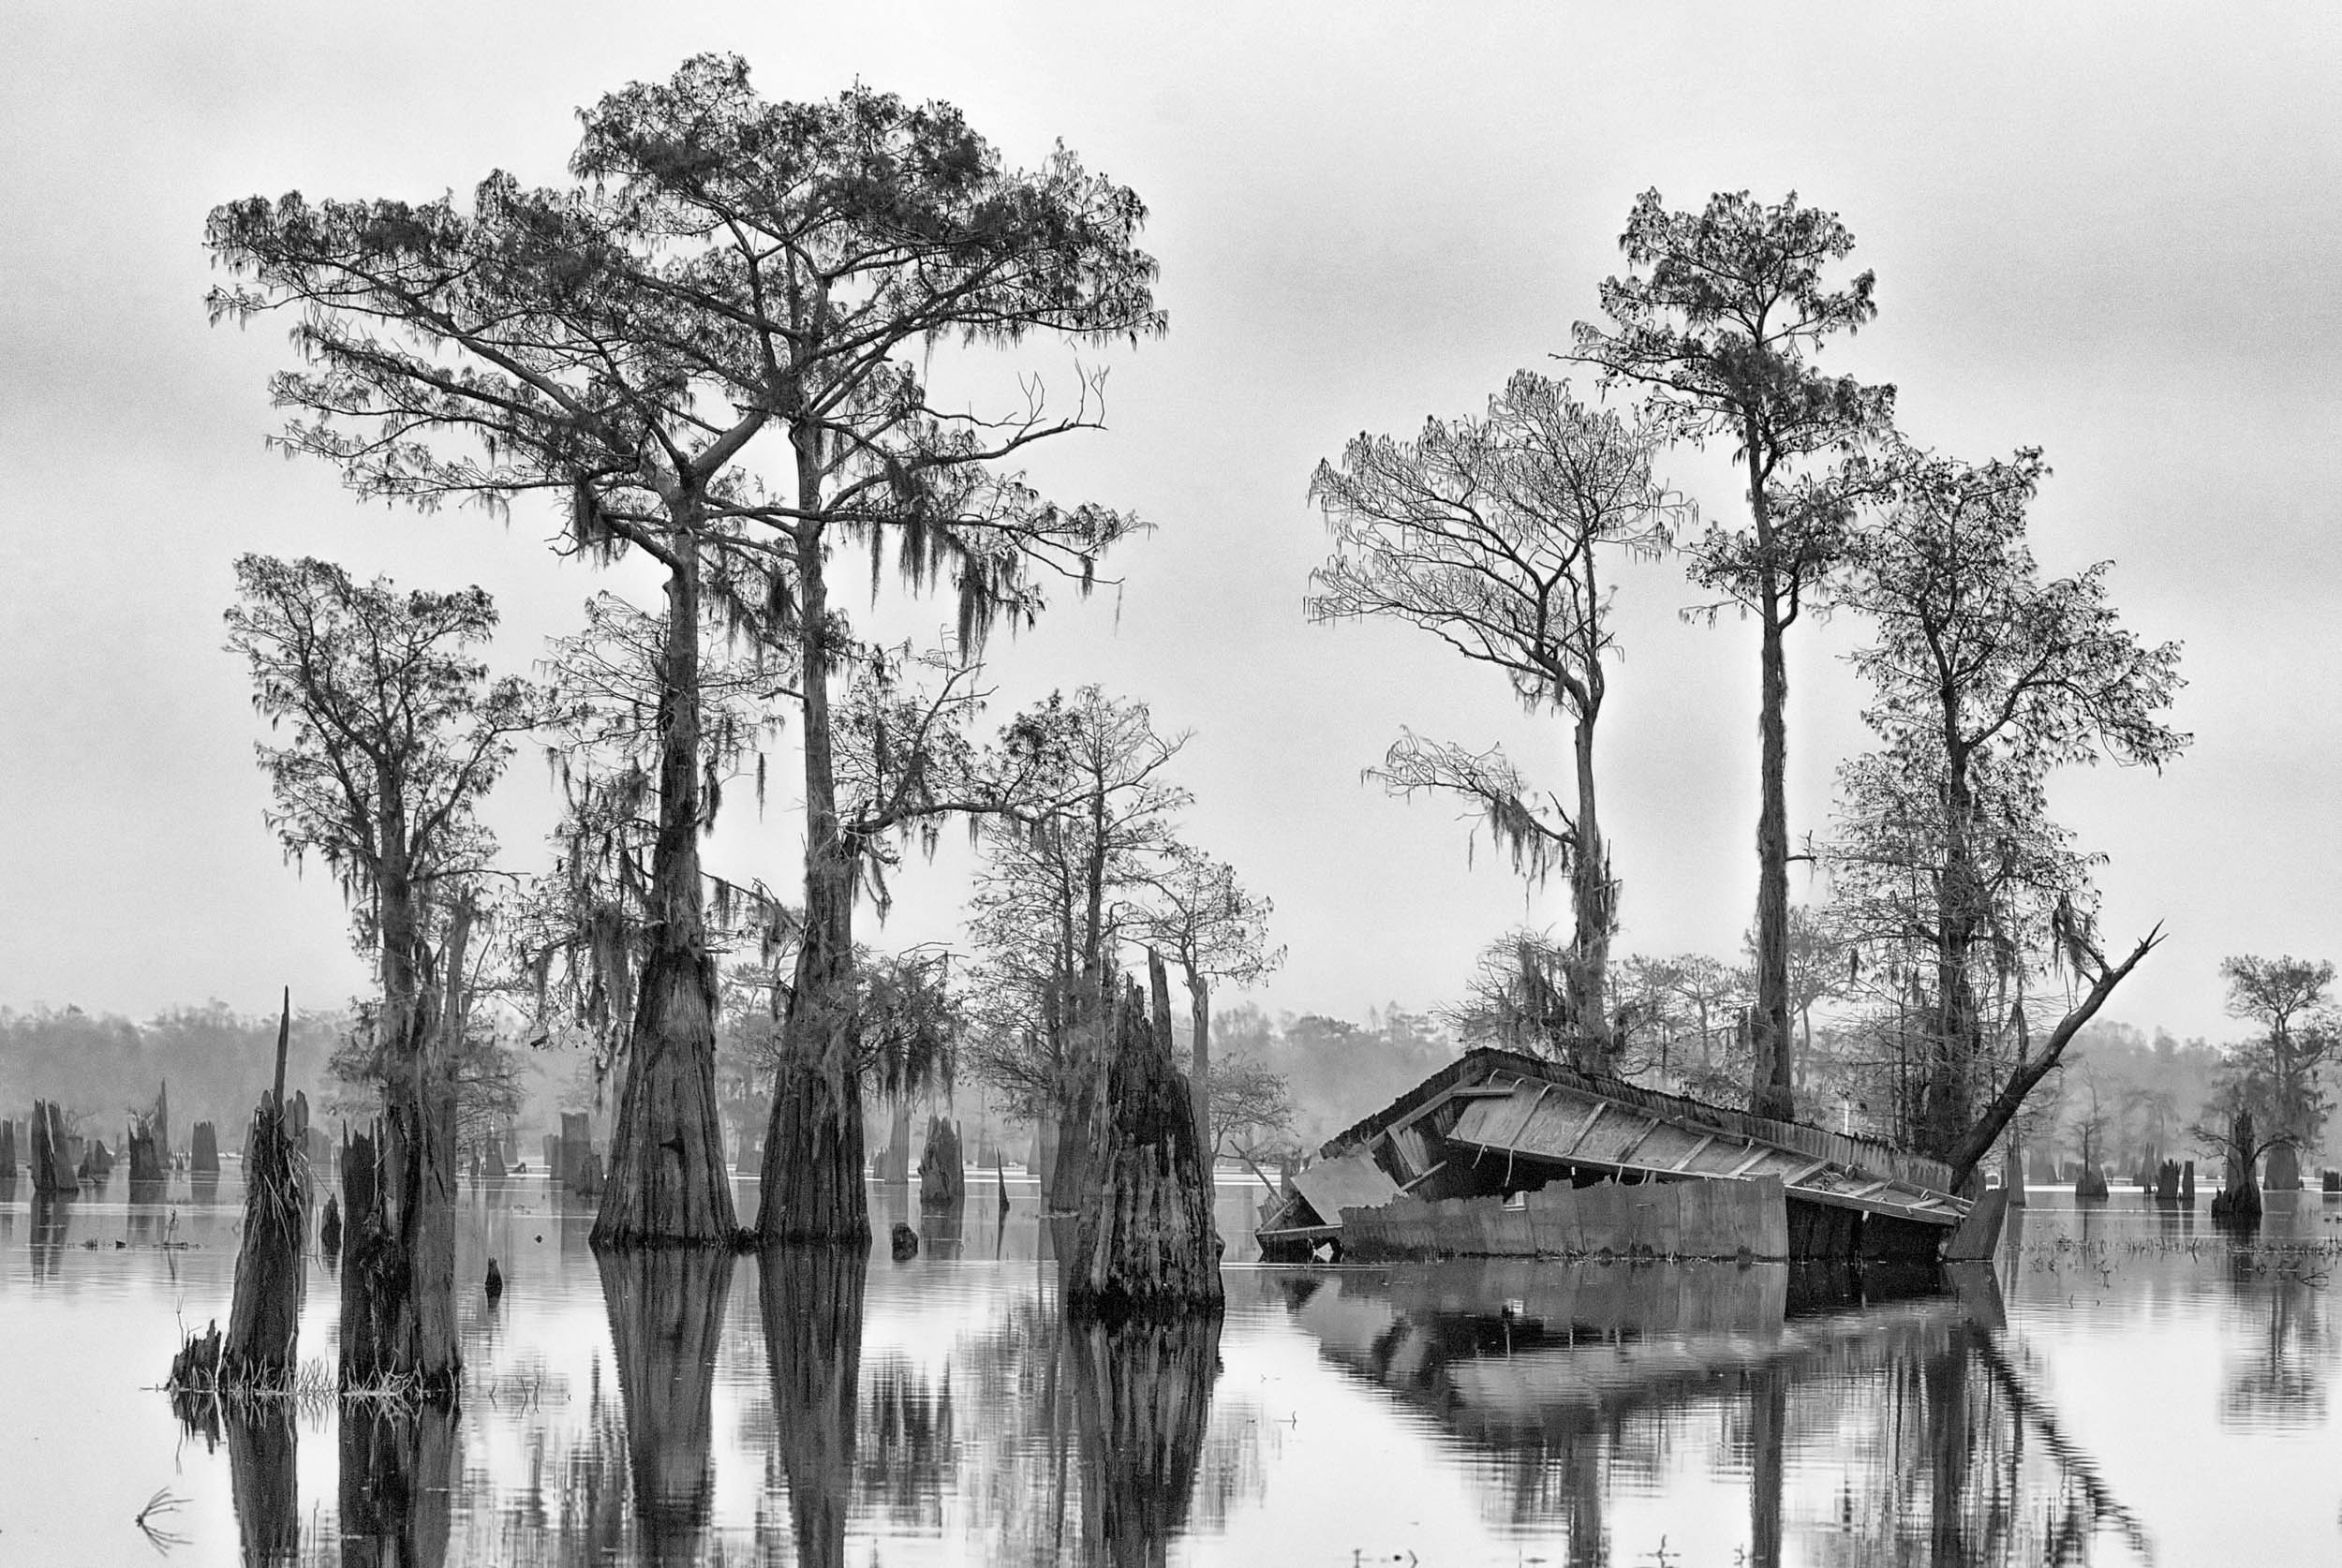 Abandoned Hunting Blind in the Atchafalaya Basin